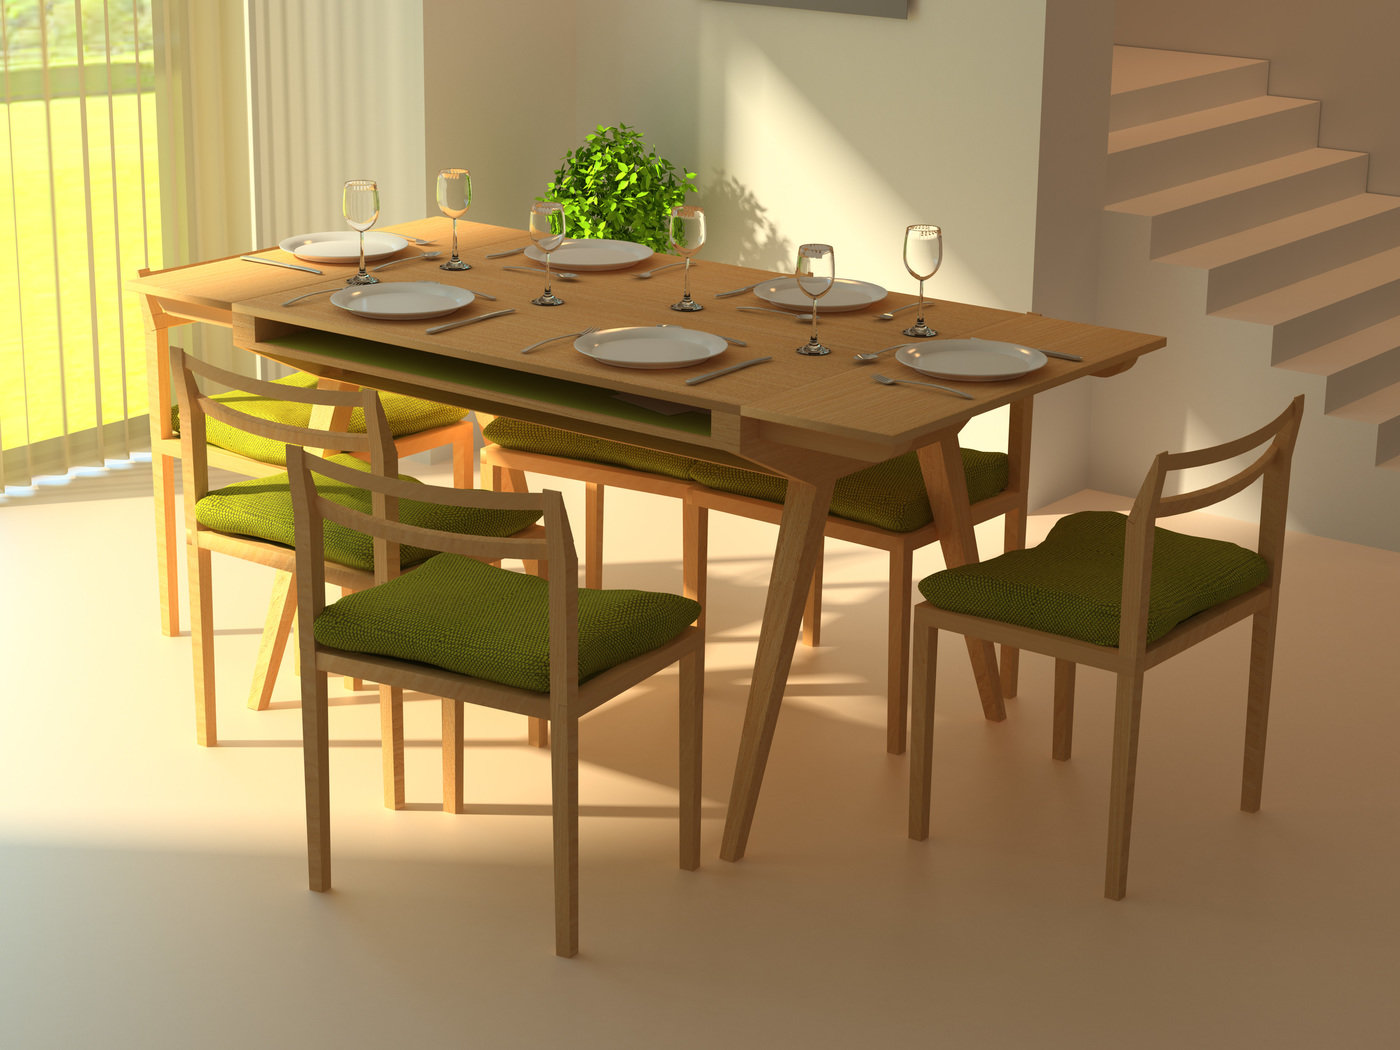 Will Dining Table/Desk by Lisa Sandall at Coroflot com